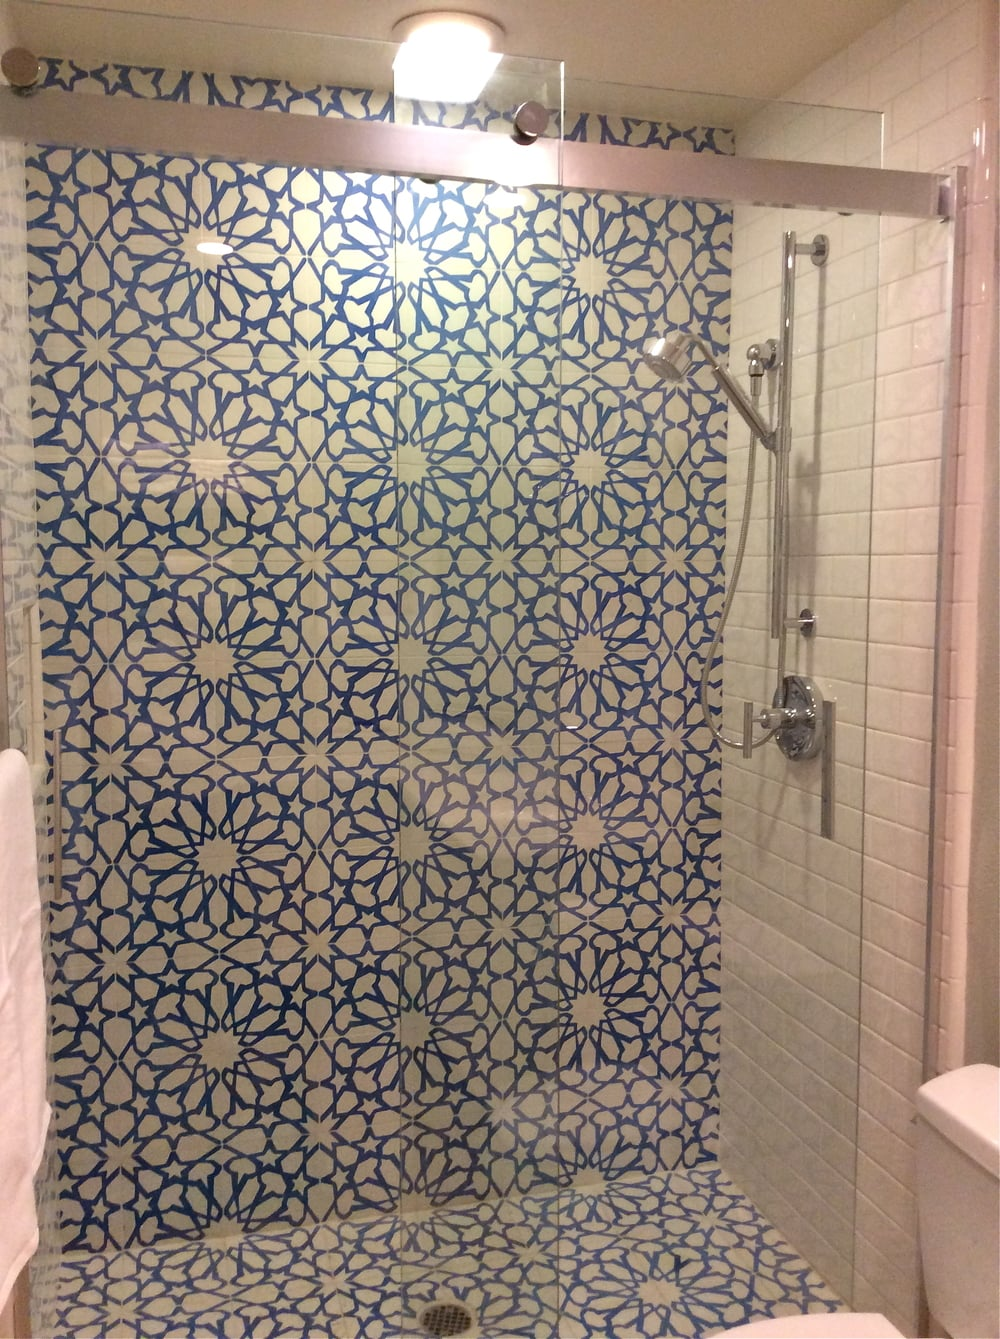 The incredible shower in the master bathroom at the Channel Islands Marina house.